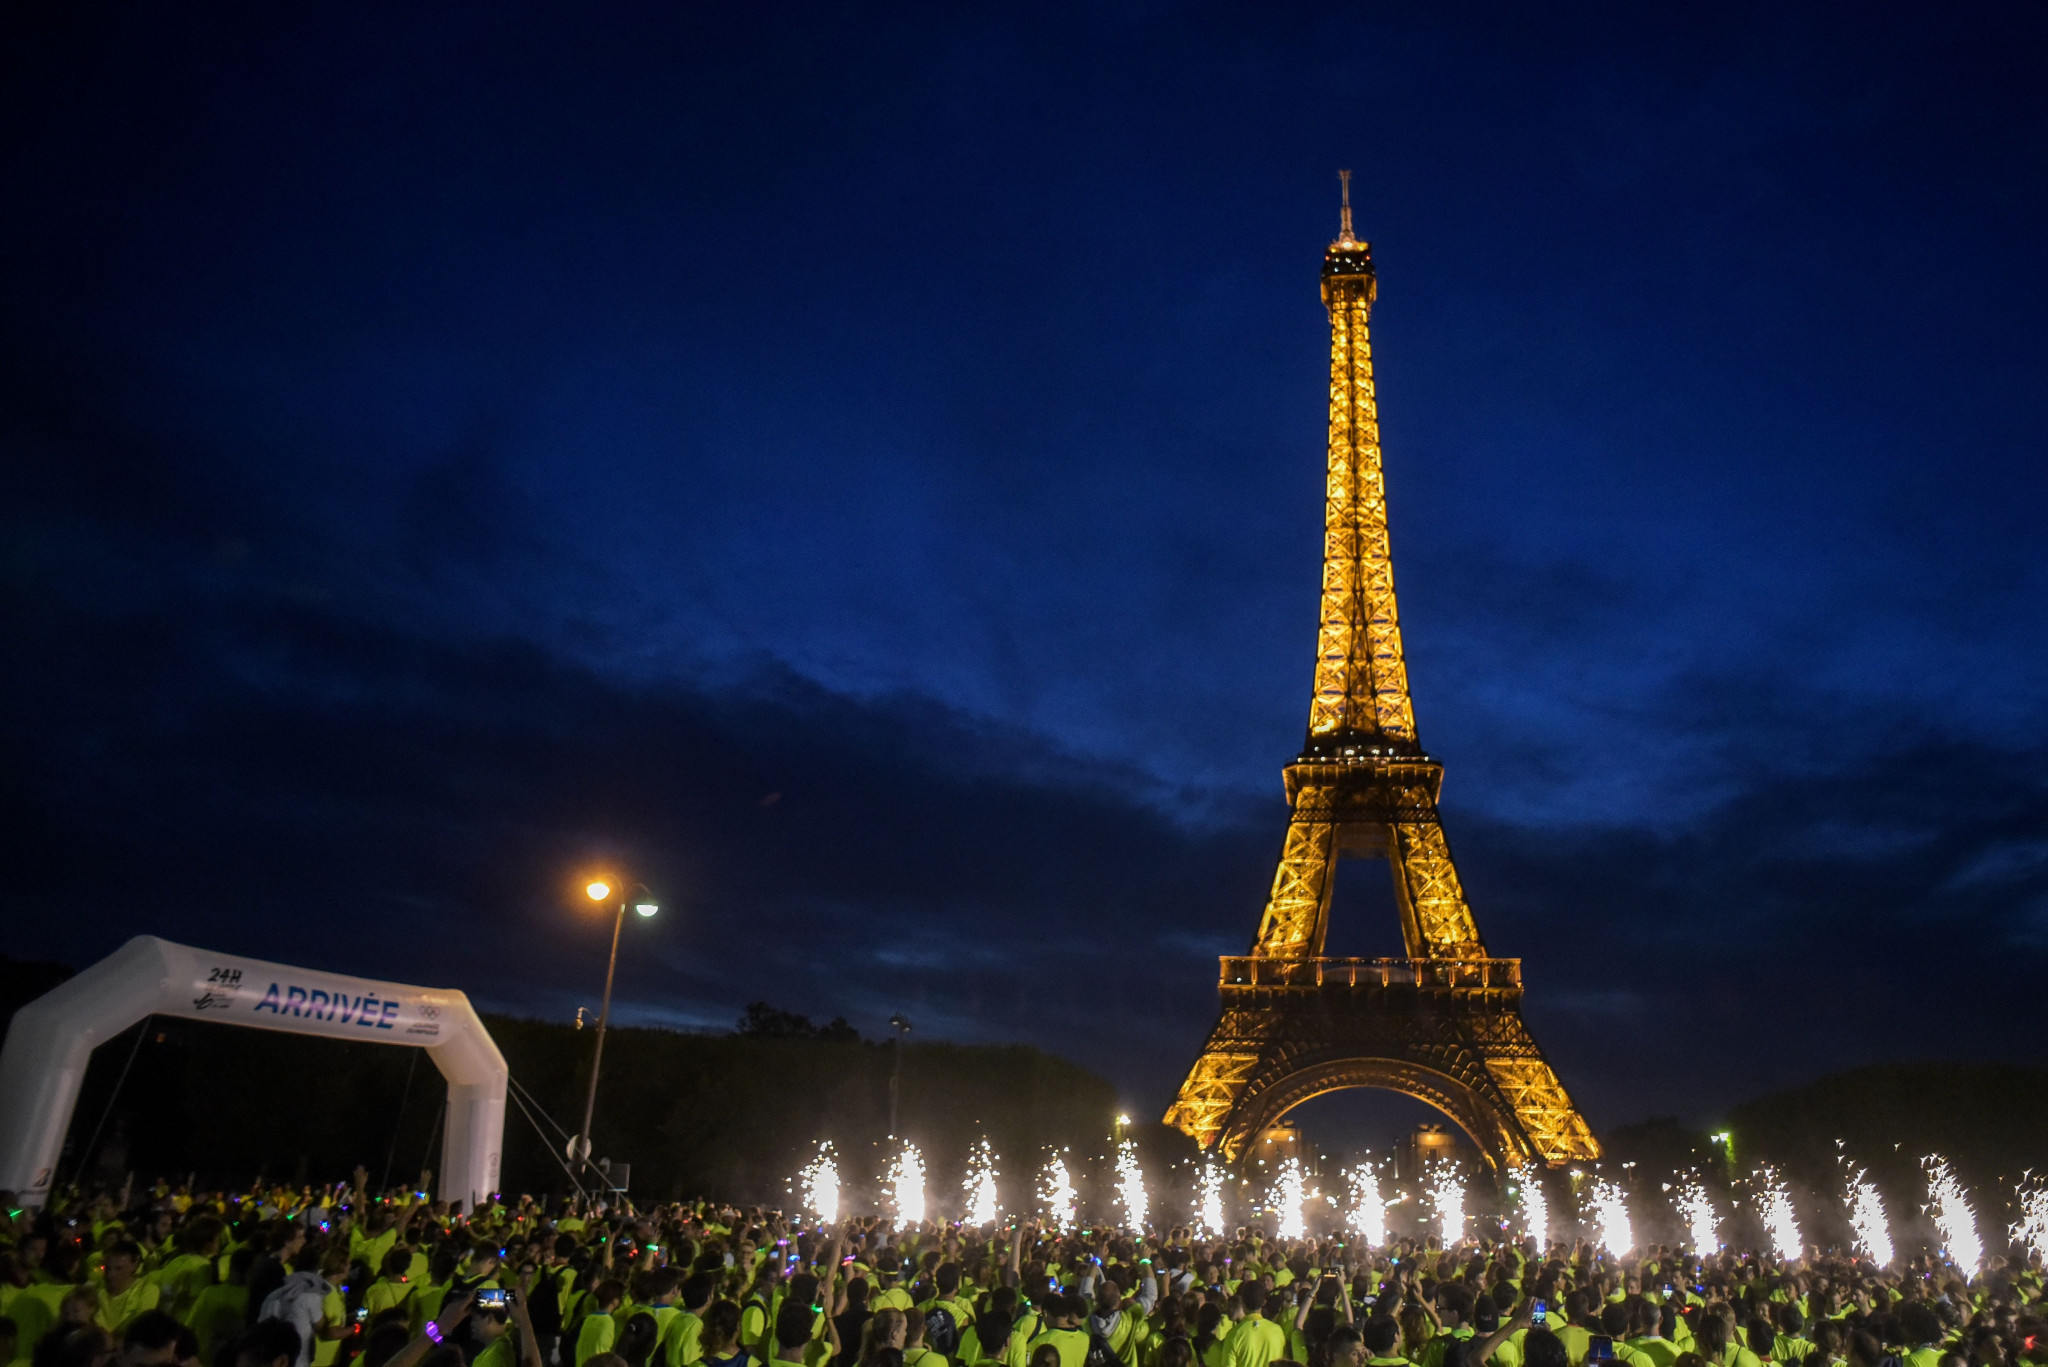 Eiffel Tower set for golden look prior to Paris 2024